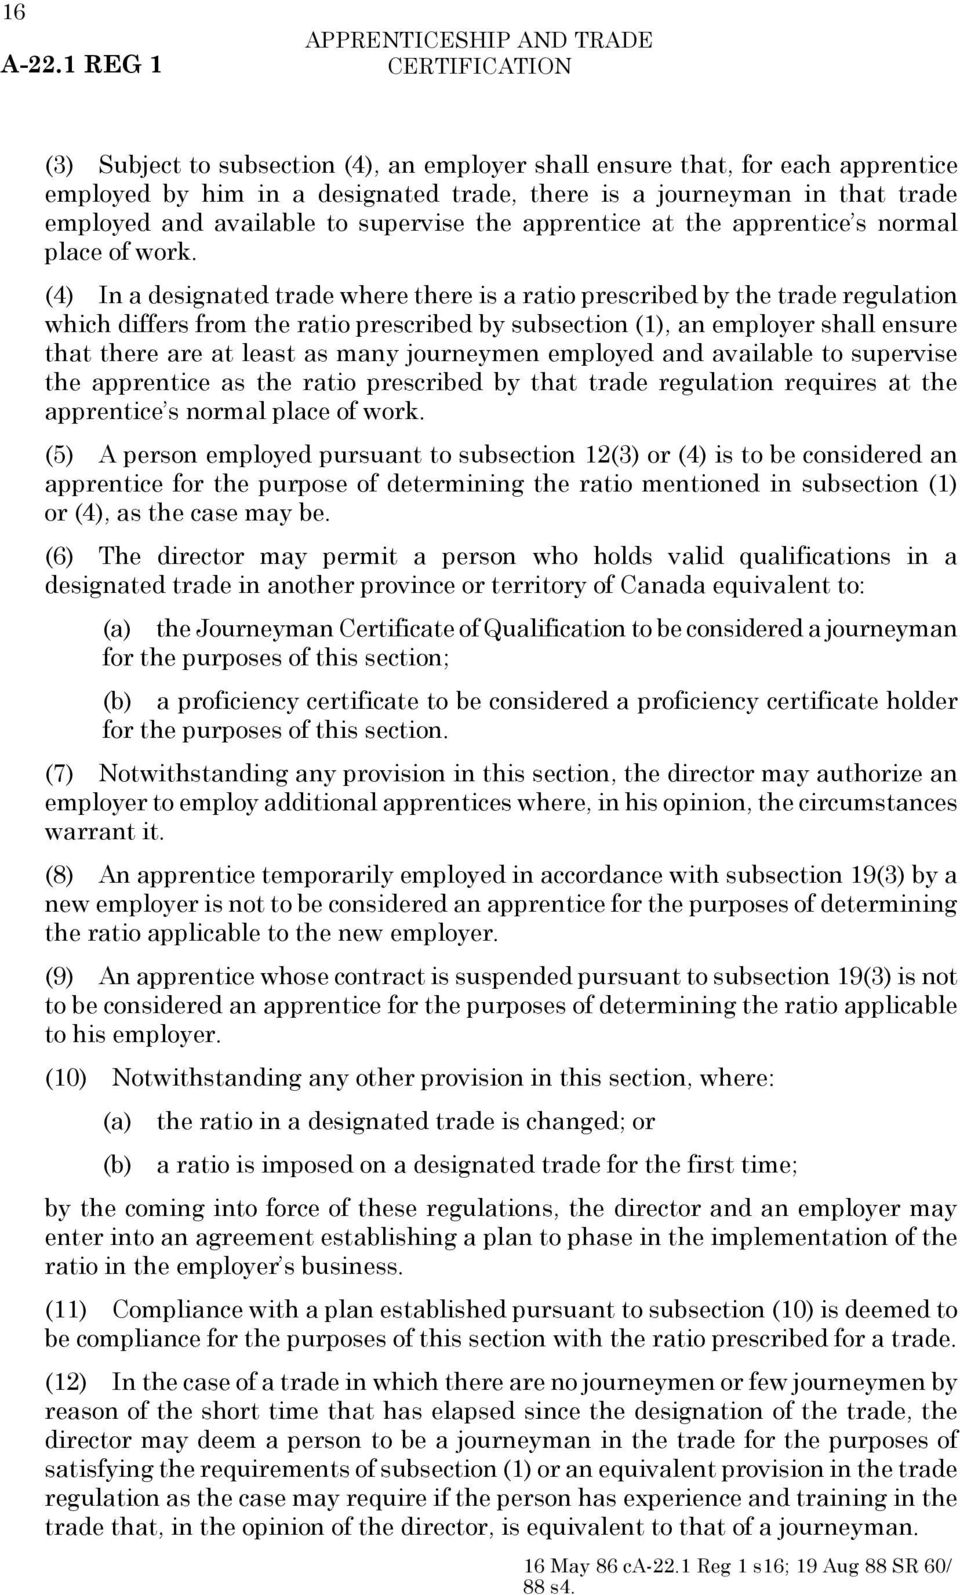 (4) In a designated trade where there is a ratio prescribed by the trade regulation which differs from the ratio prescribed by subsection (1), an employer shall ensure that there are at least as many